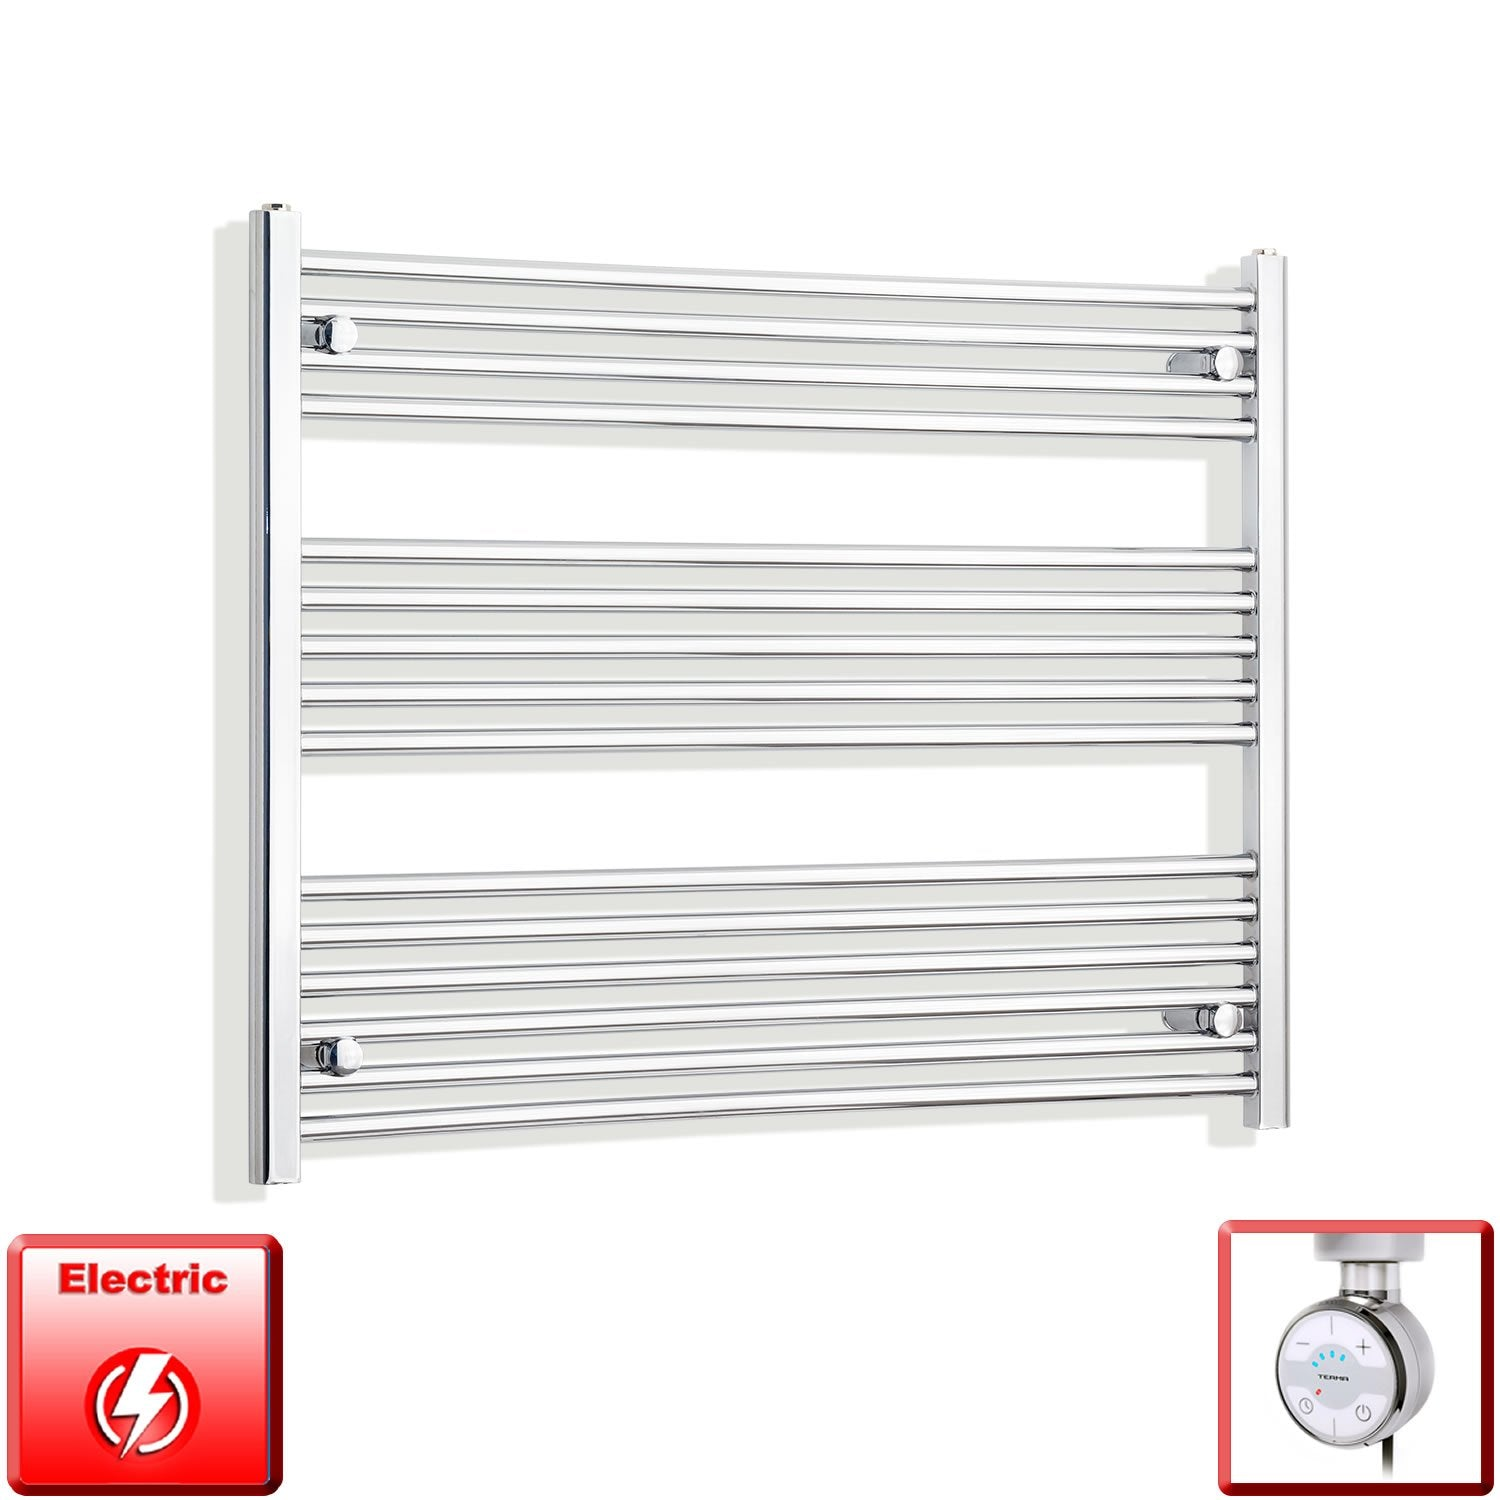 950mm Wide 800mm High Flat Chrome Pre-Filled Electric Heated Towel Rail Radiator HTR,MOA Thermostatic Element